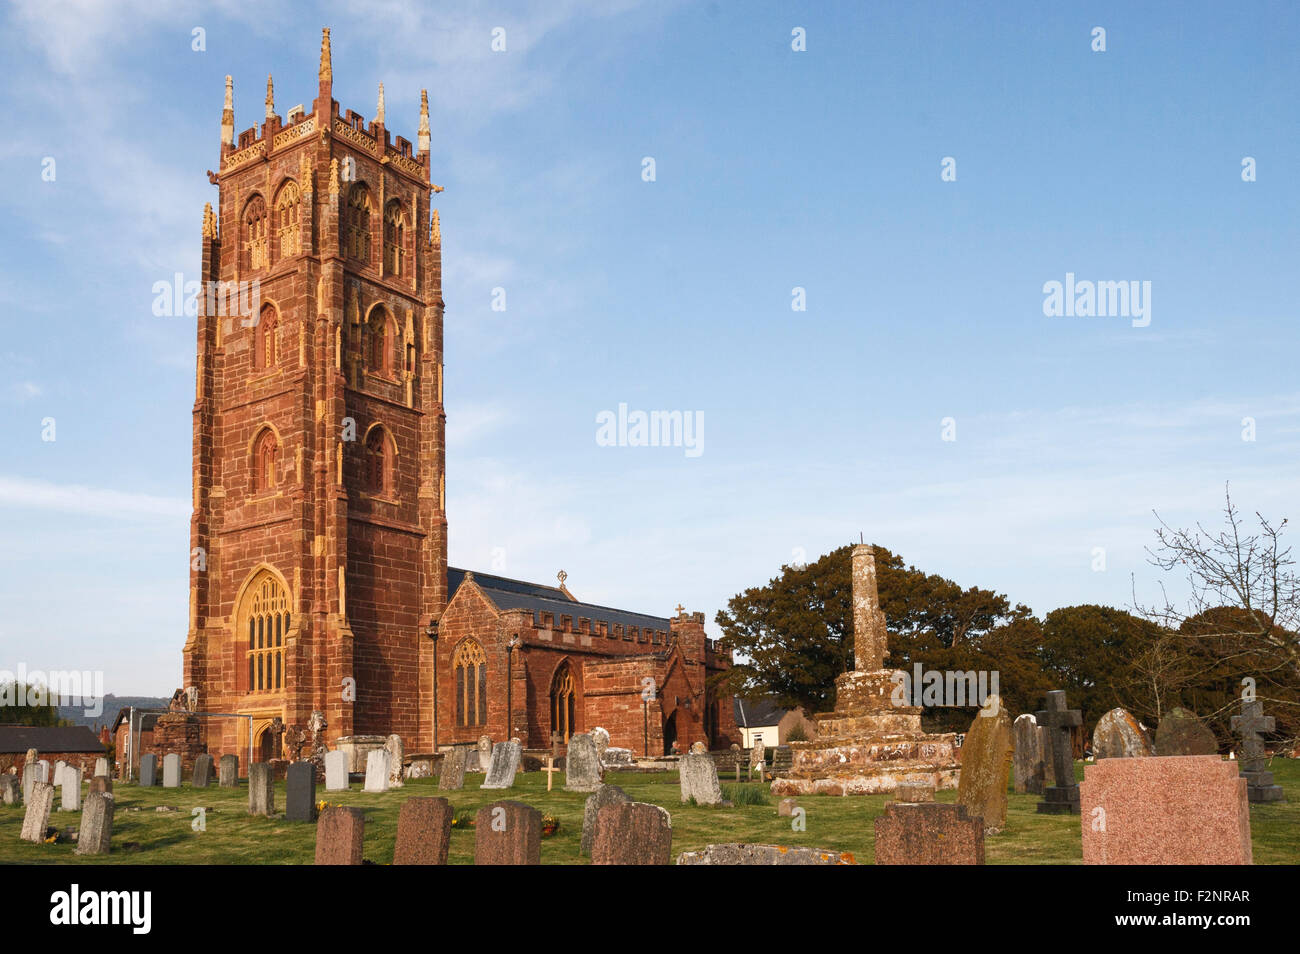 St. Mary's church in Bishop's Lydeard, Somerset. - Stock Image